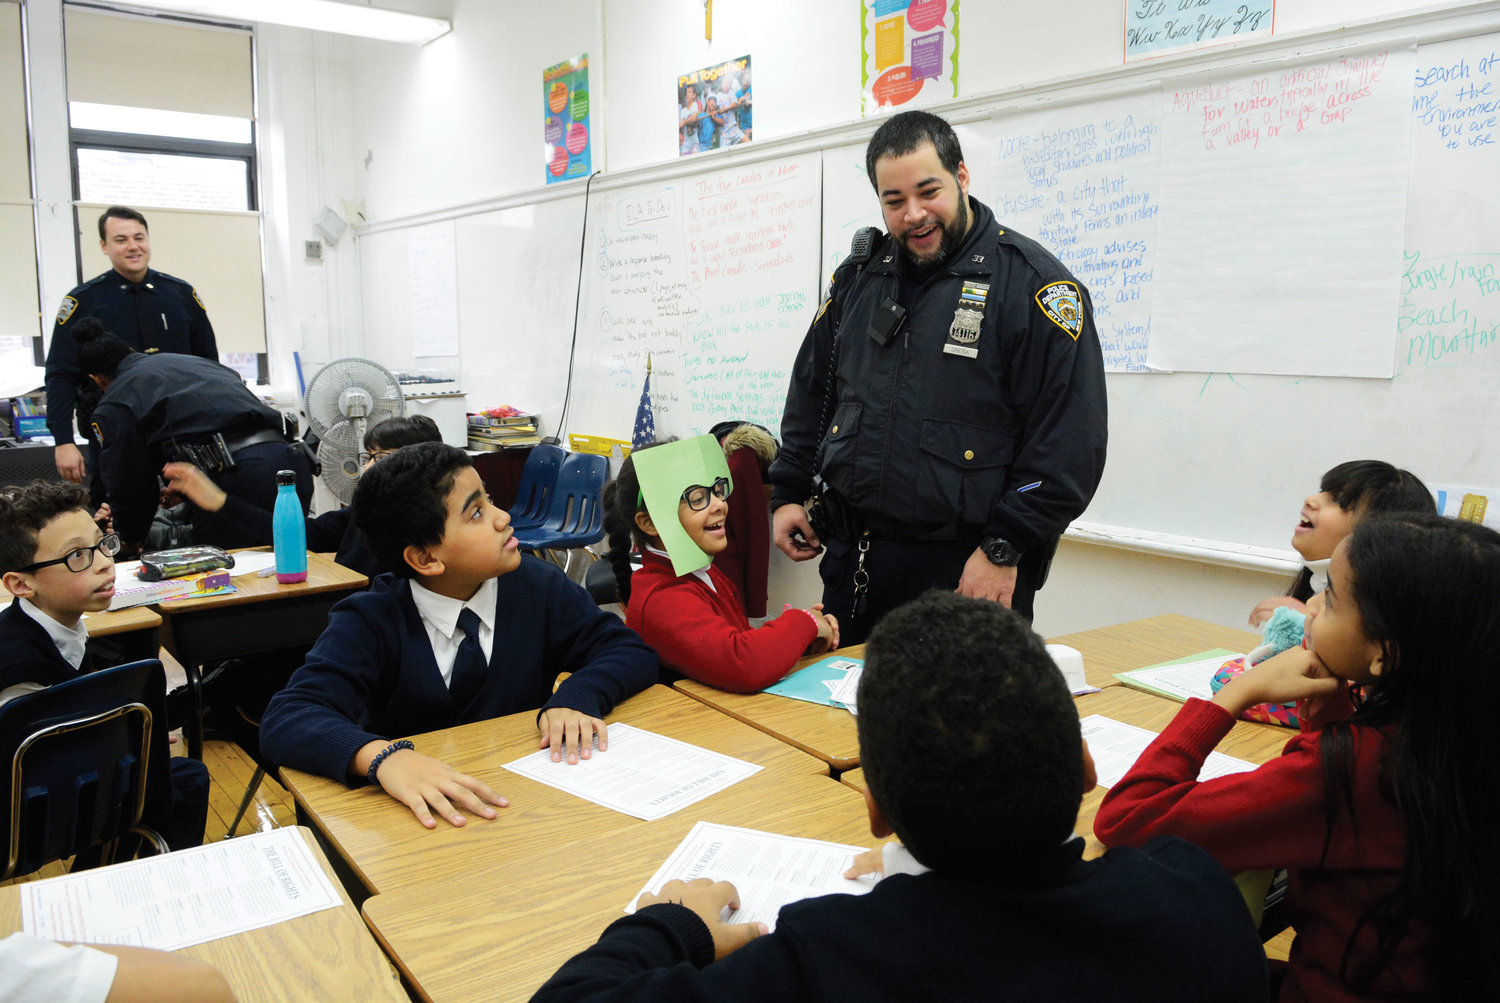 Ariel Urena, a NYPD officer in Manhattan's 33rd precinct, speaks with students.